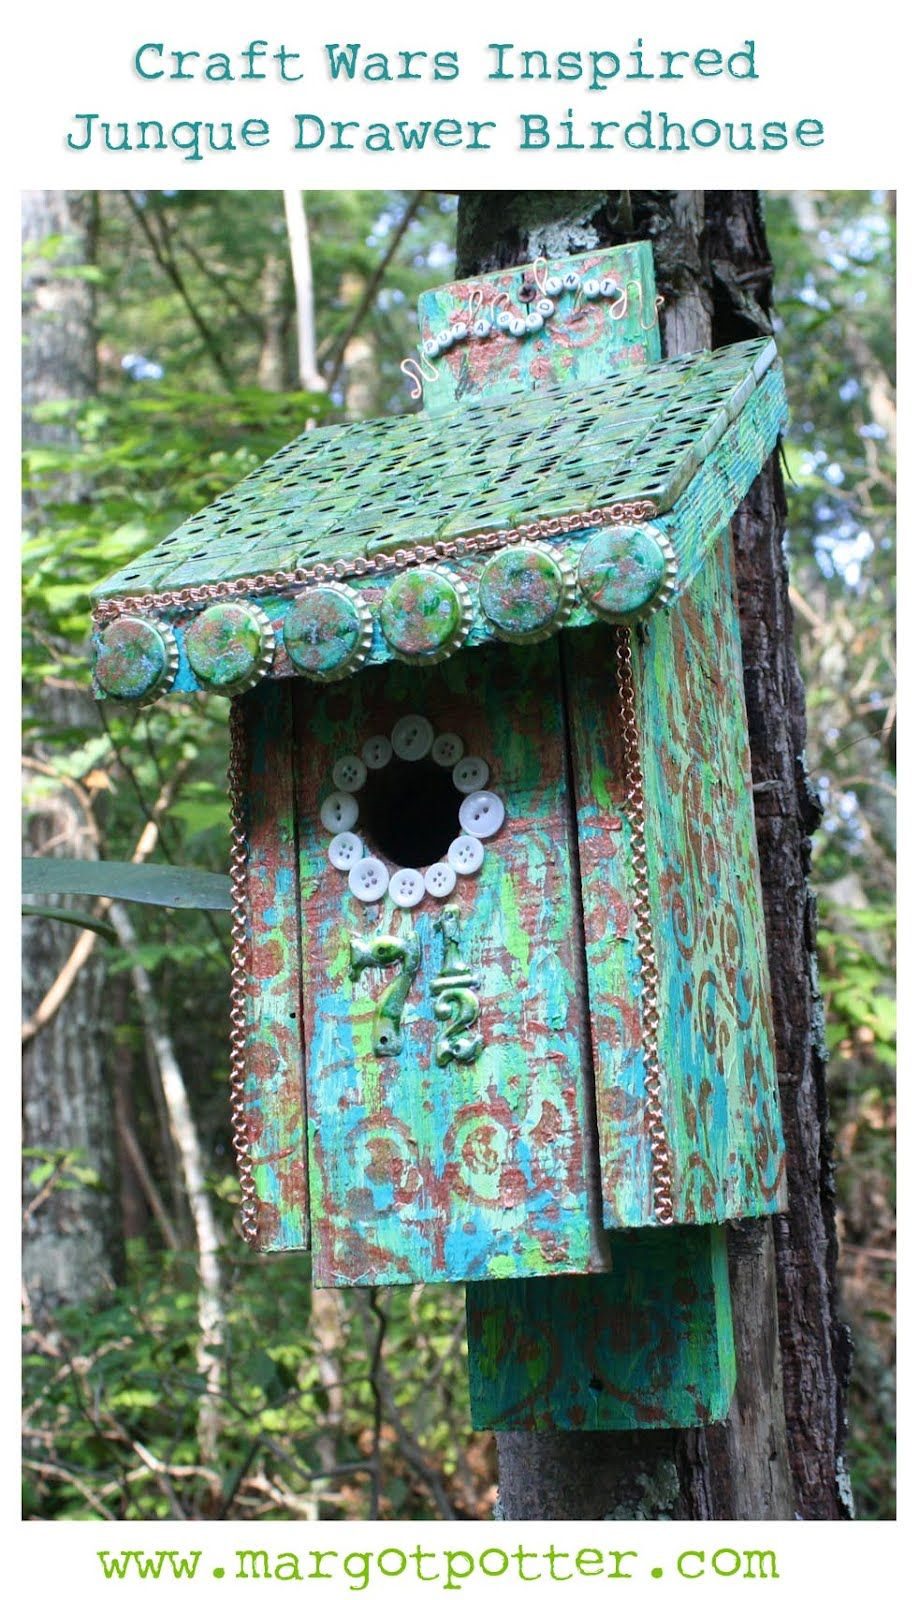 Margot Potter: Craft Wars Inspired Junque Drawer Birdhouse!